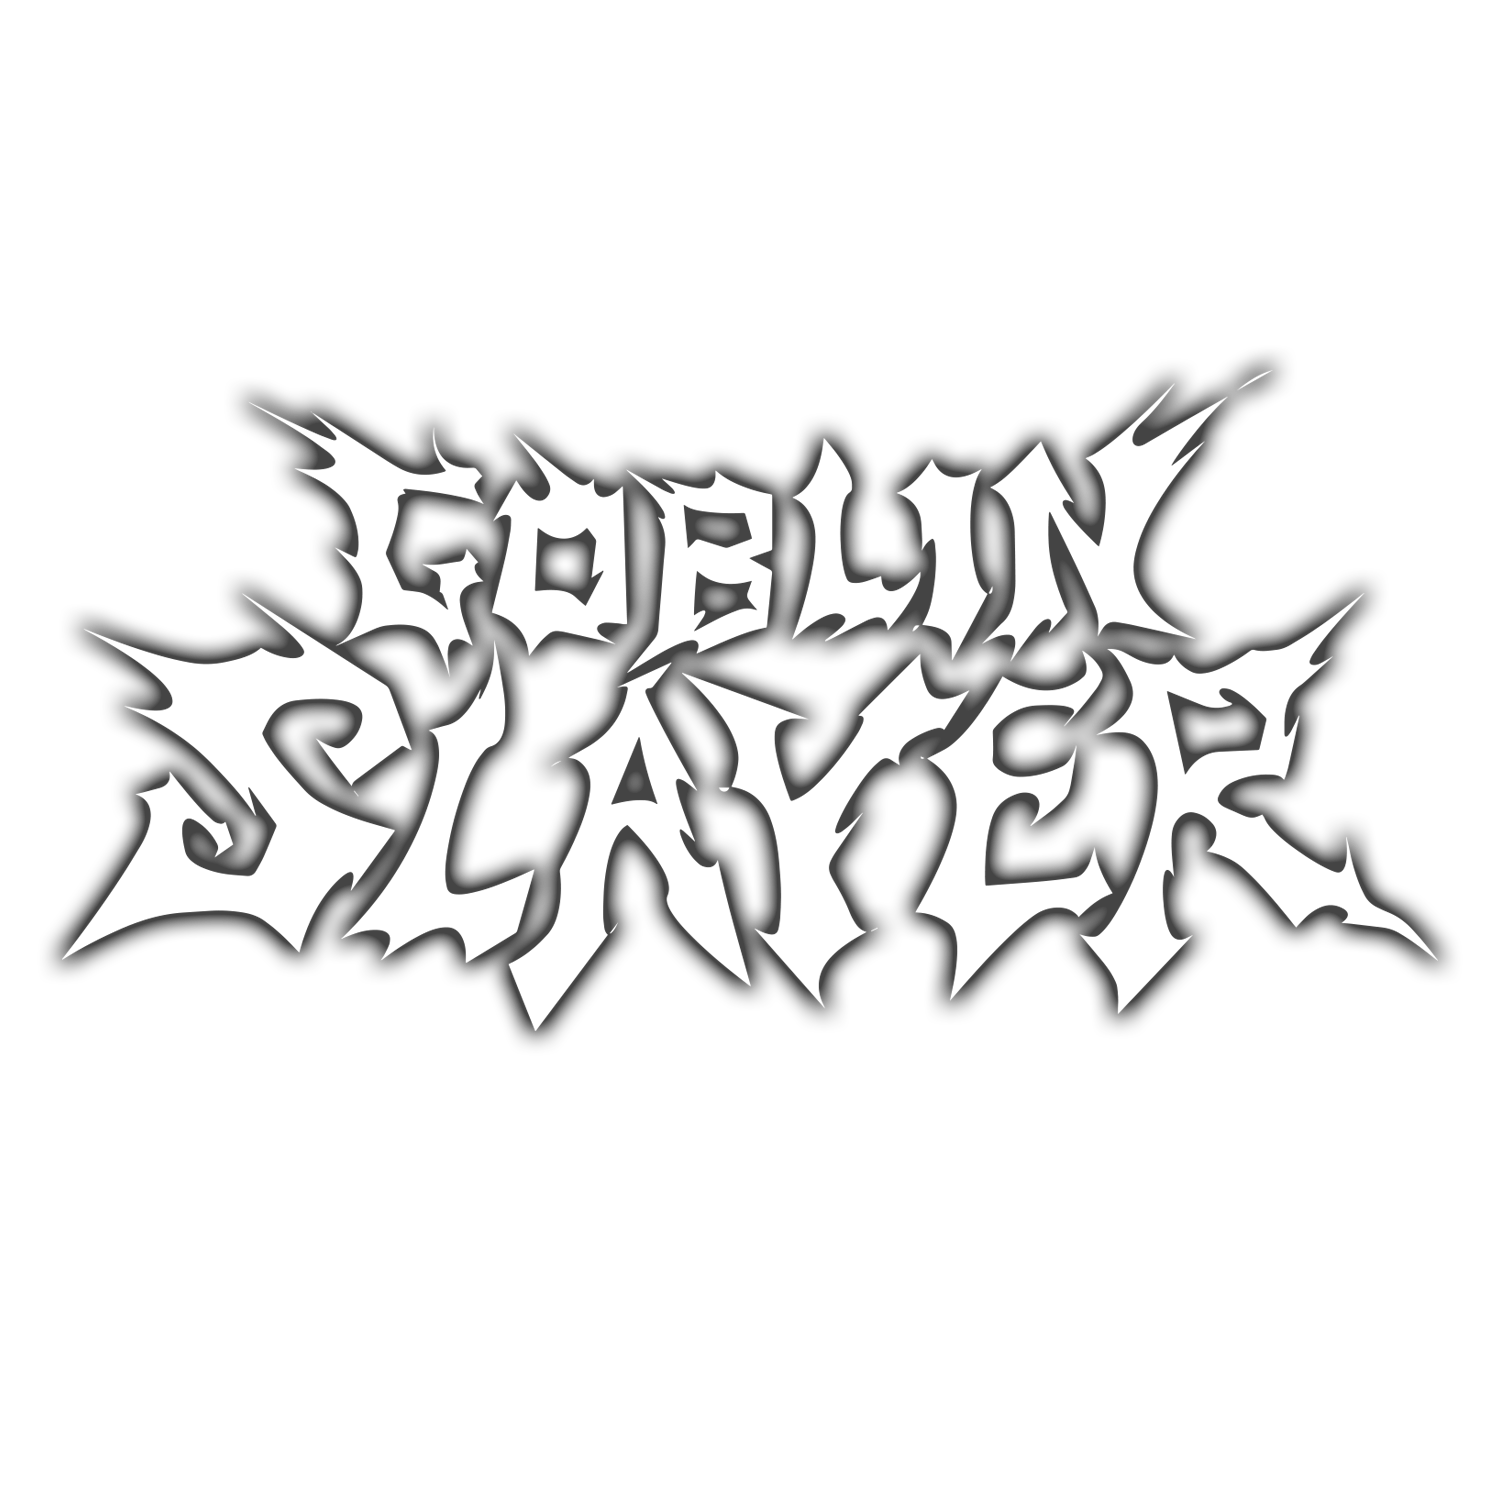 GOBLIN SLAYER LOGO